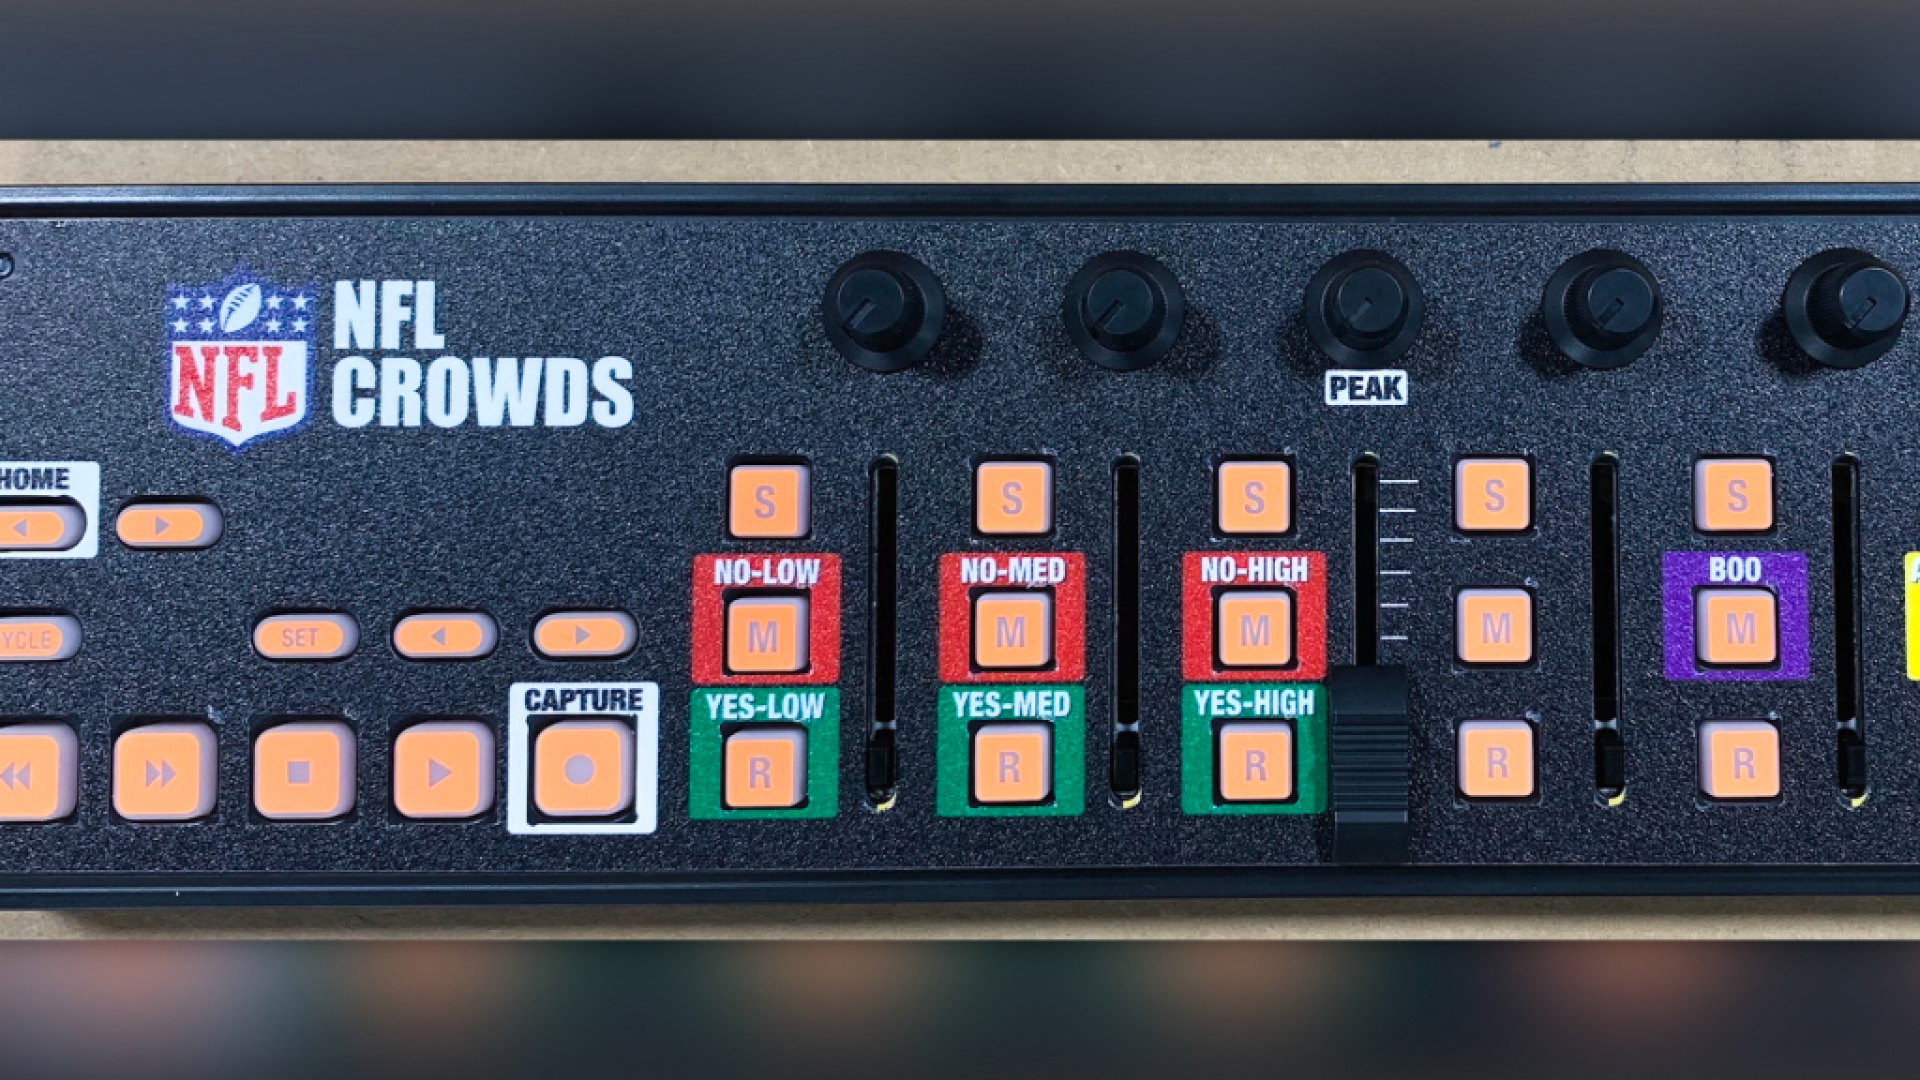 """Closeup of a button controller that says """"NFL Crowds"""" on it, and has a cluster of red and green buttons labeled Yes/No, Low/Med/High"""